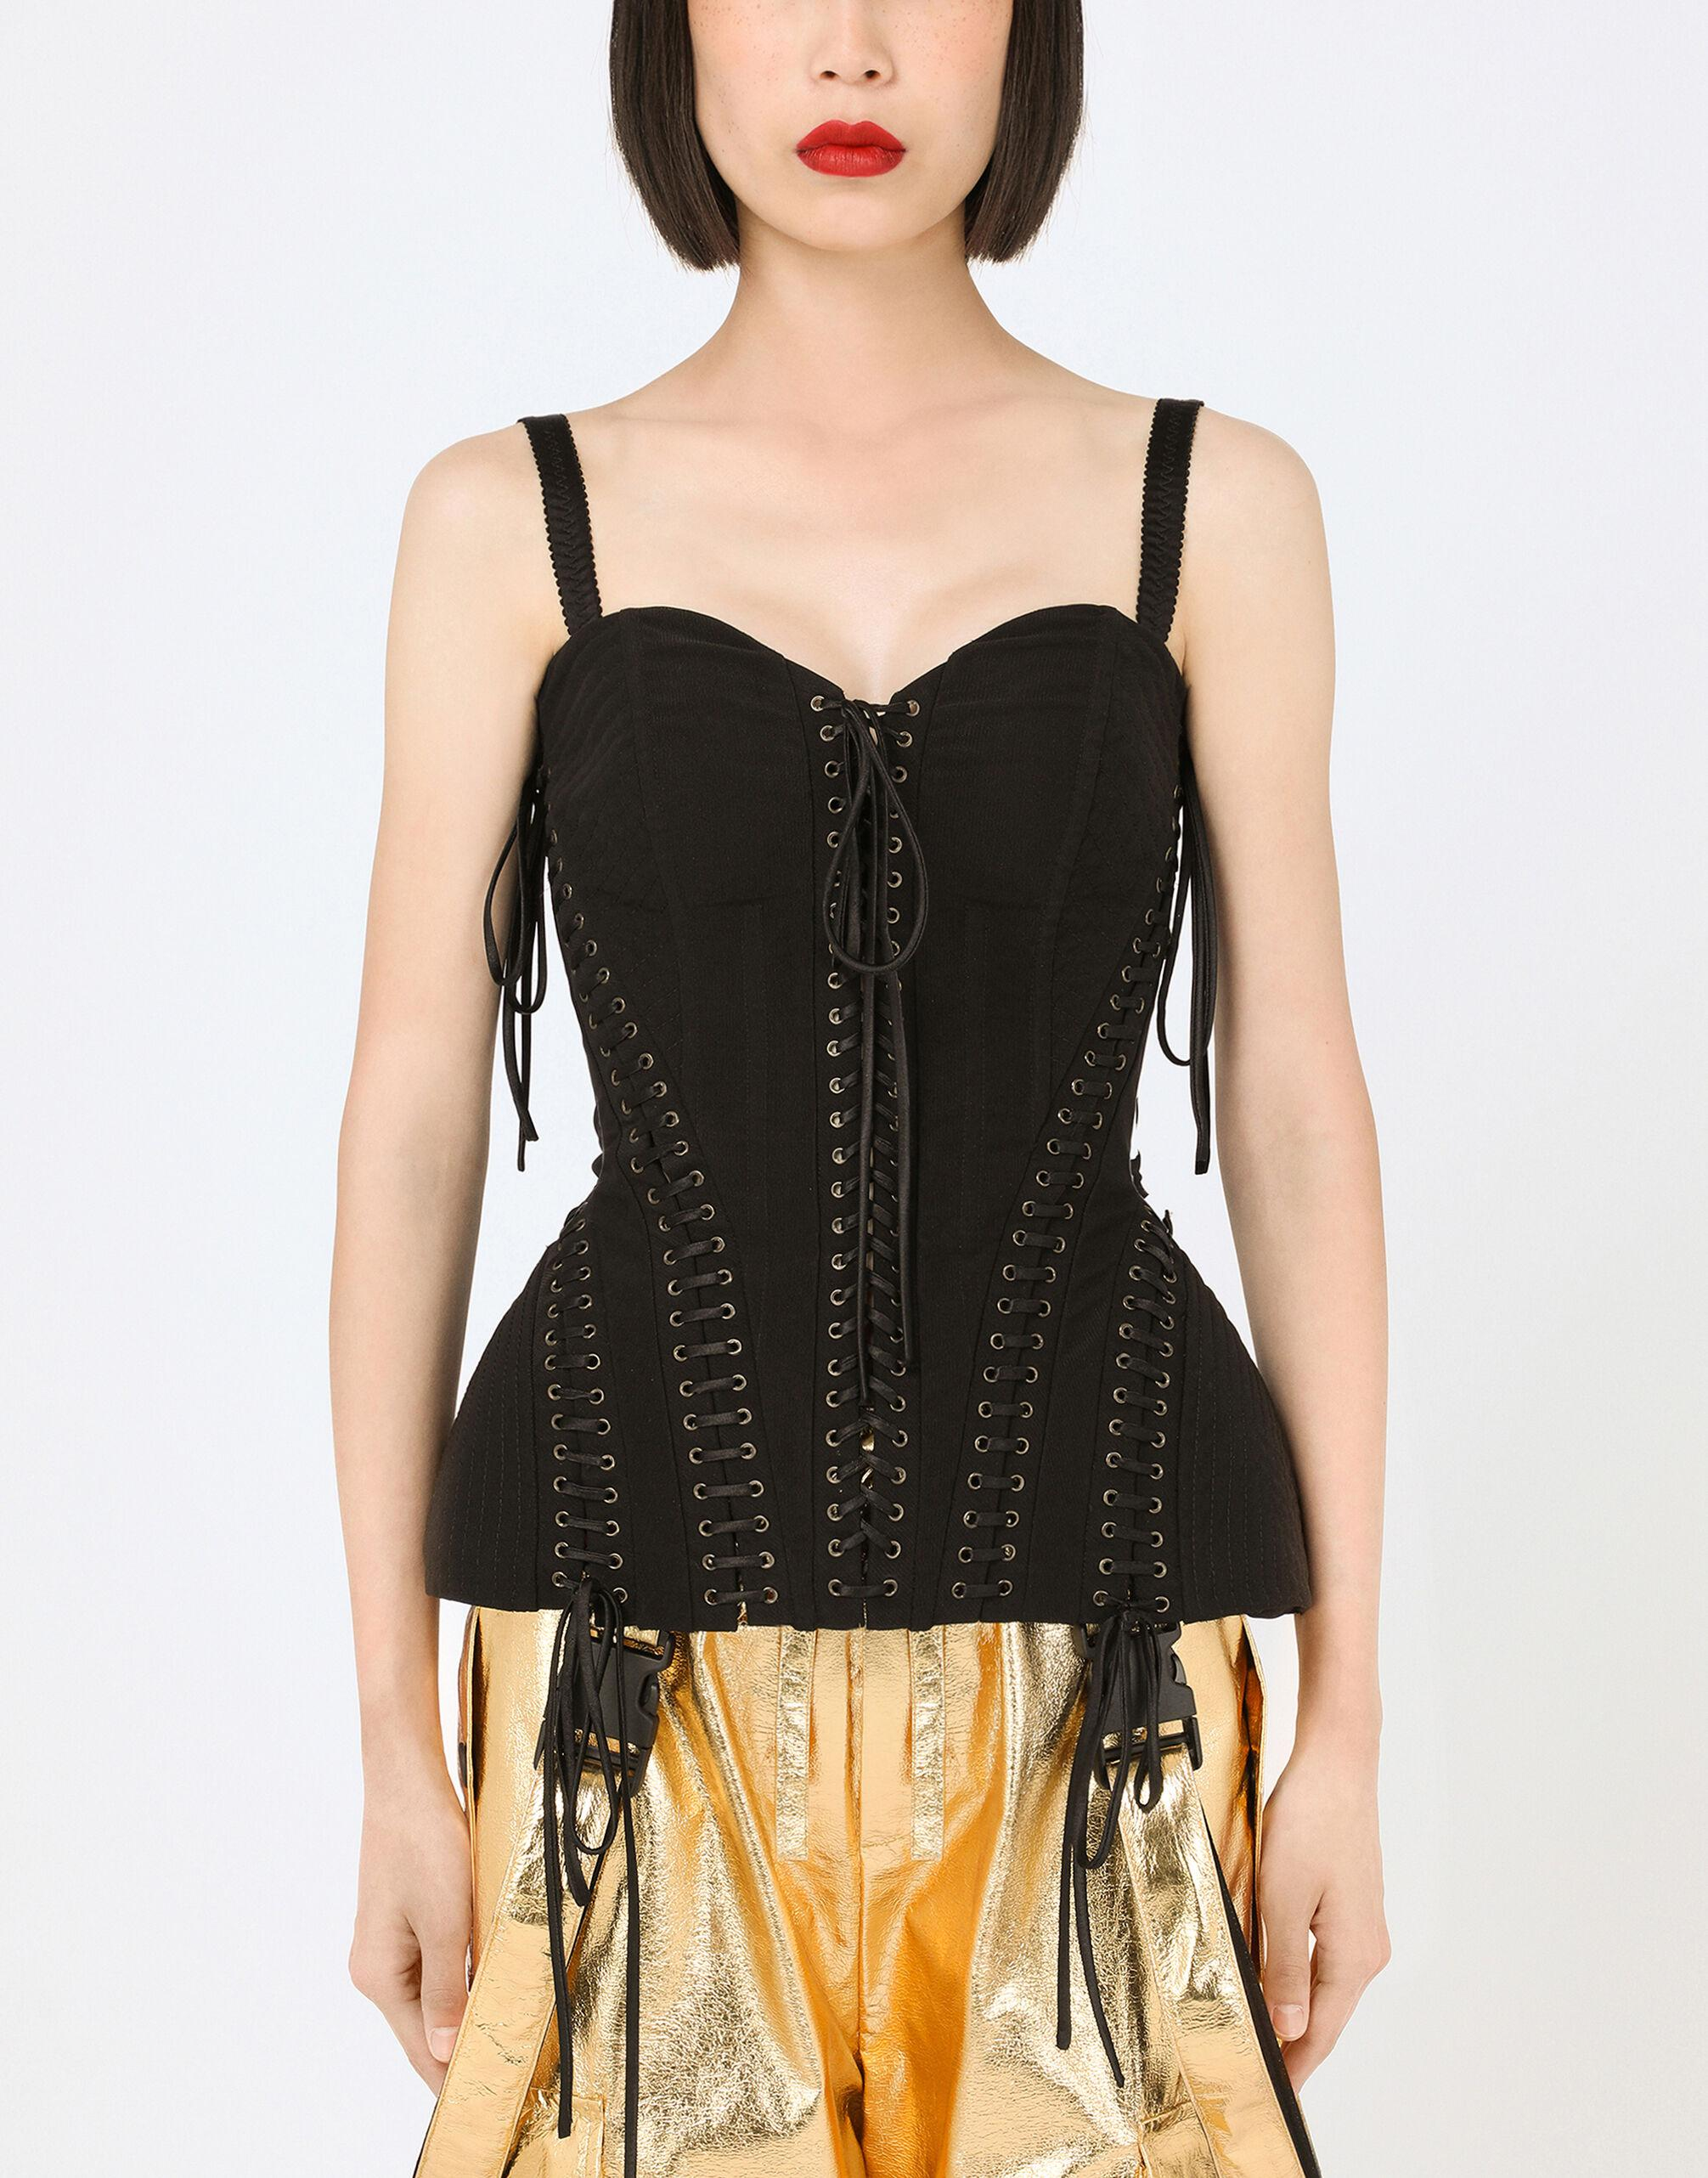 Stretch knit bustier with laces